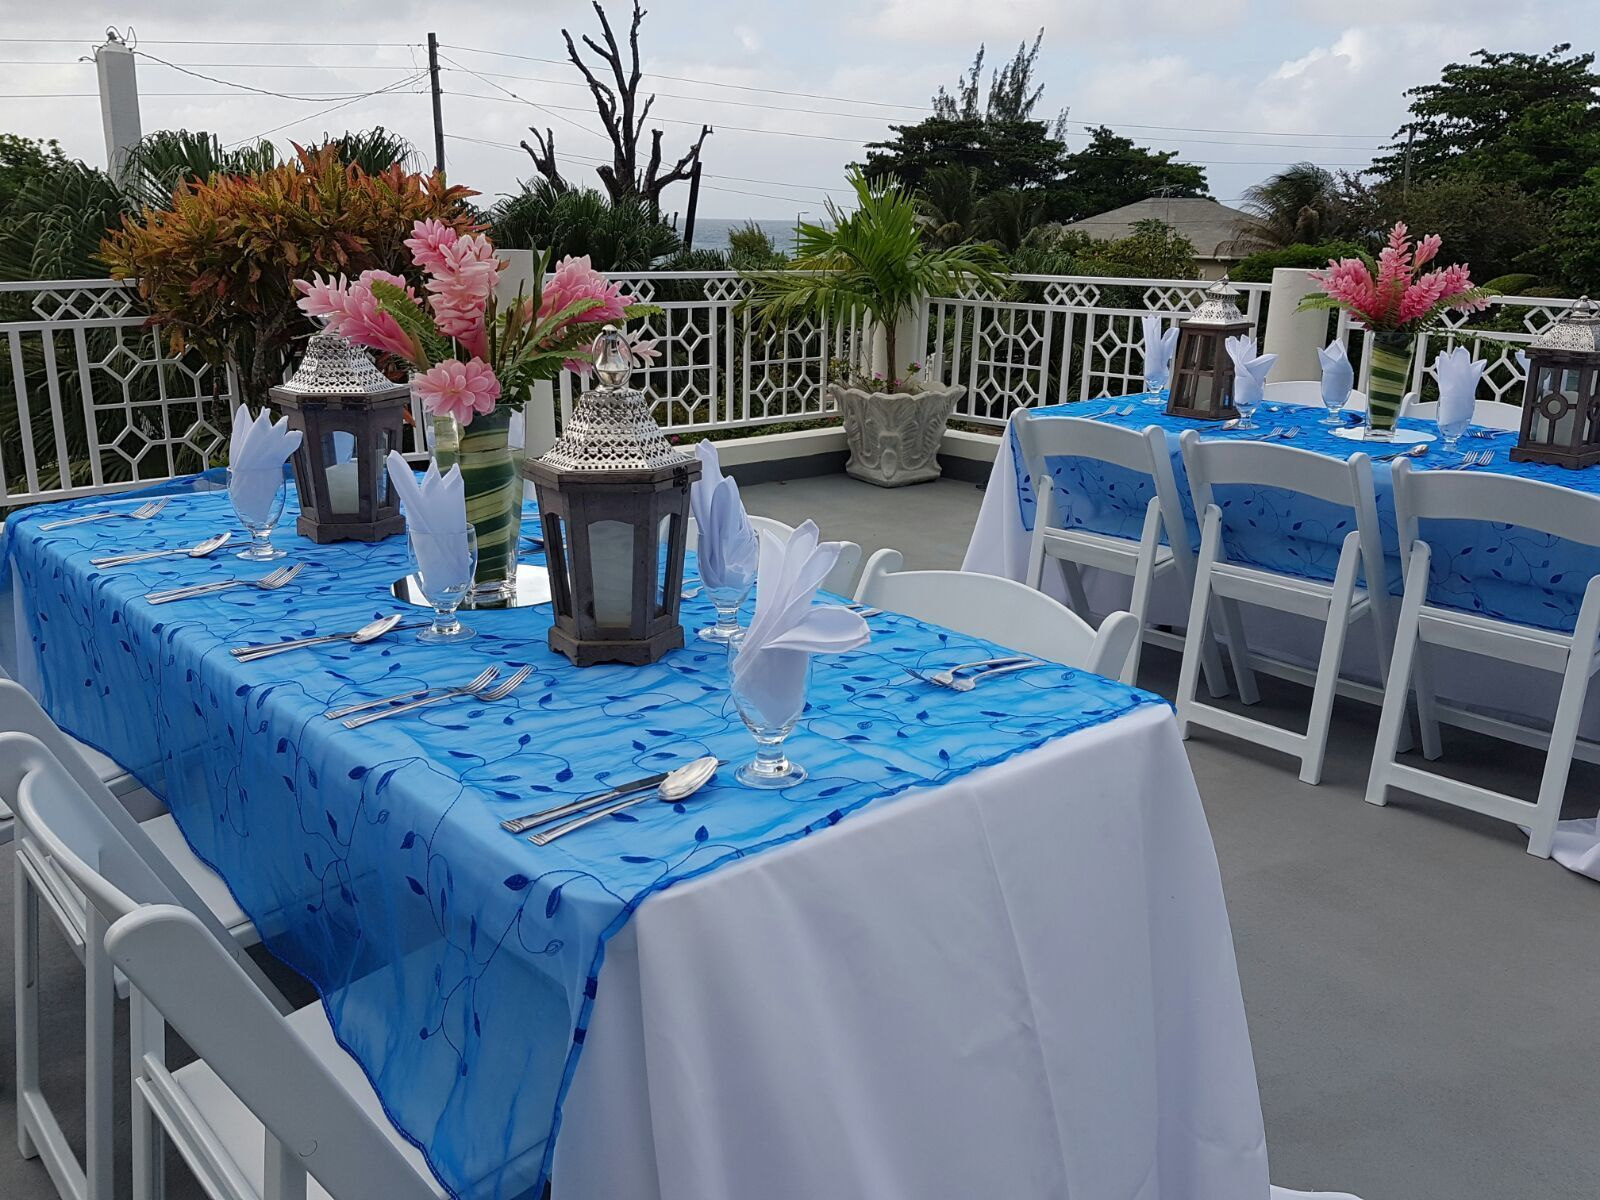 Jamaica wedding venues: The lower level roof deck at Mais Oui Tennis & Spa villa in Discovery Bay Jamaica. A wedding designer's dream for versatility.